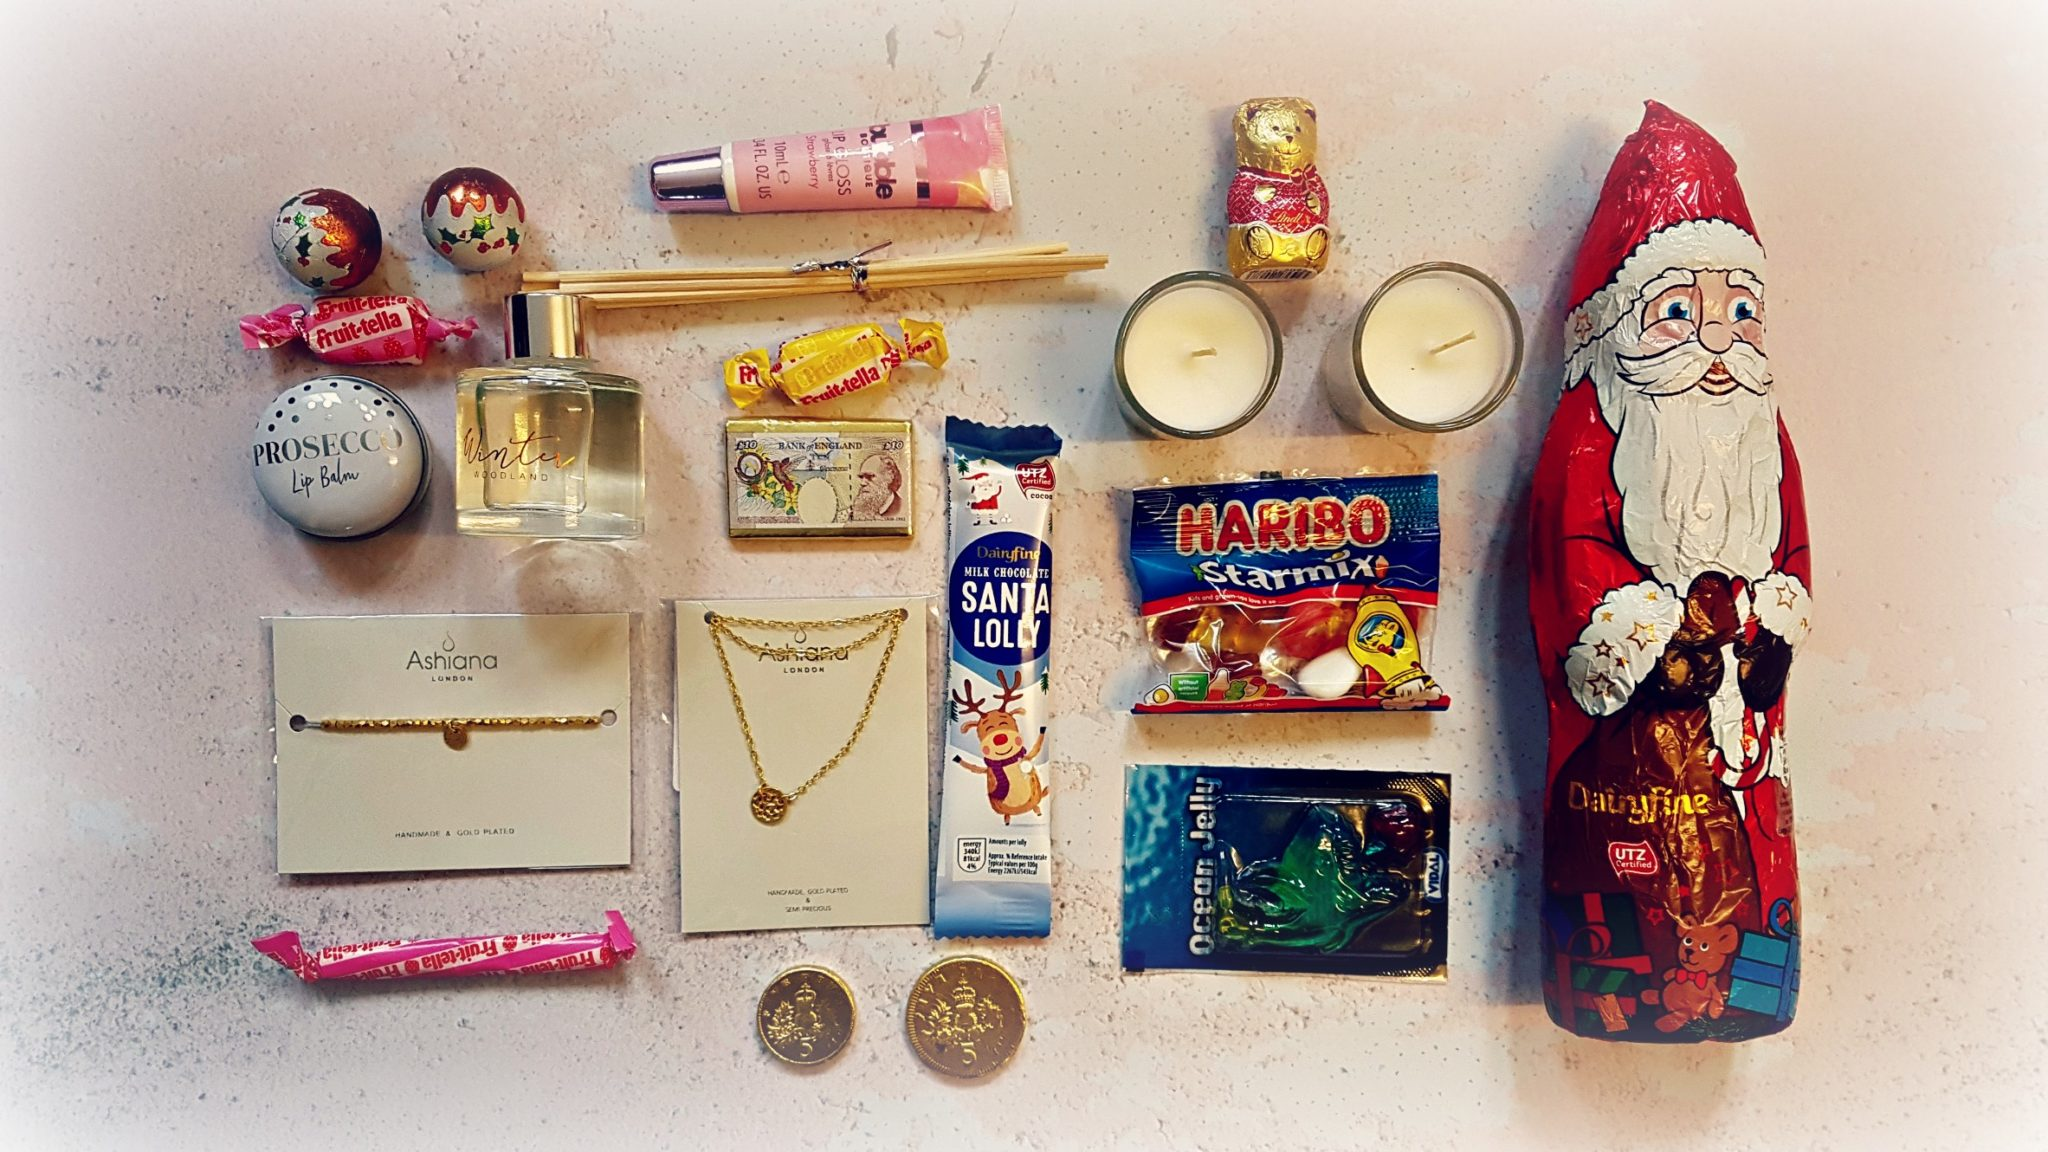 selection of christmas chocolates and sweets with a bracelet, necklace, lip balm and candle related products all arranged in flatlay